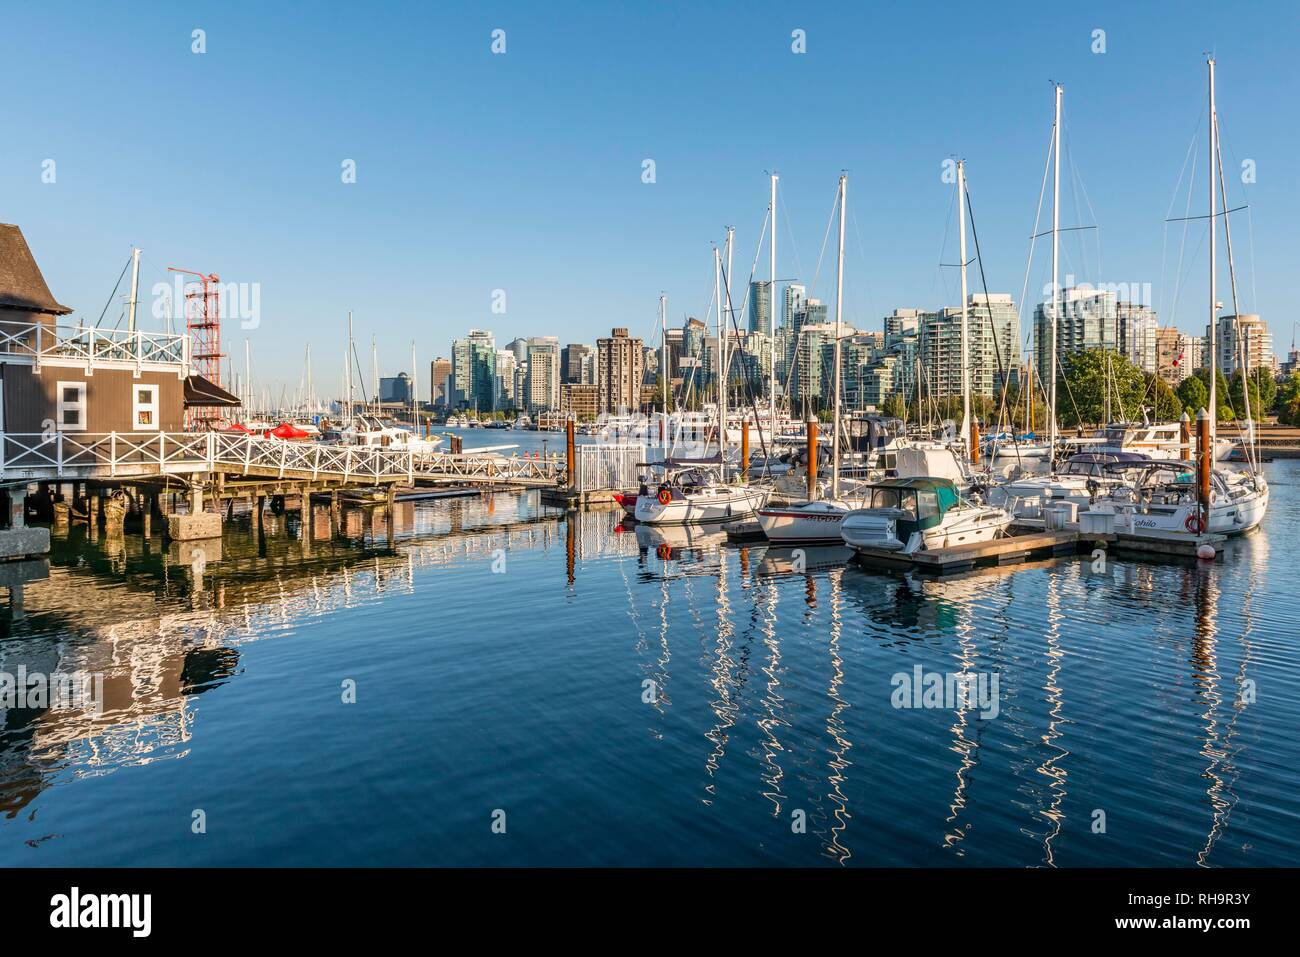 Marina with sailboats, back city centre with skyscrapers, Coal Harbour, Vancouver, British Columbia, Canada Stock Photo